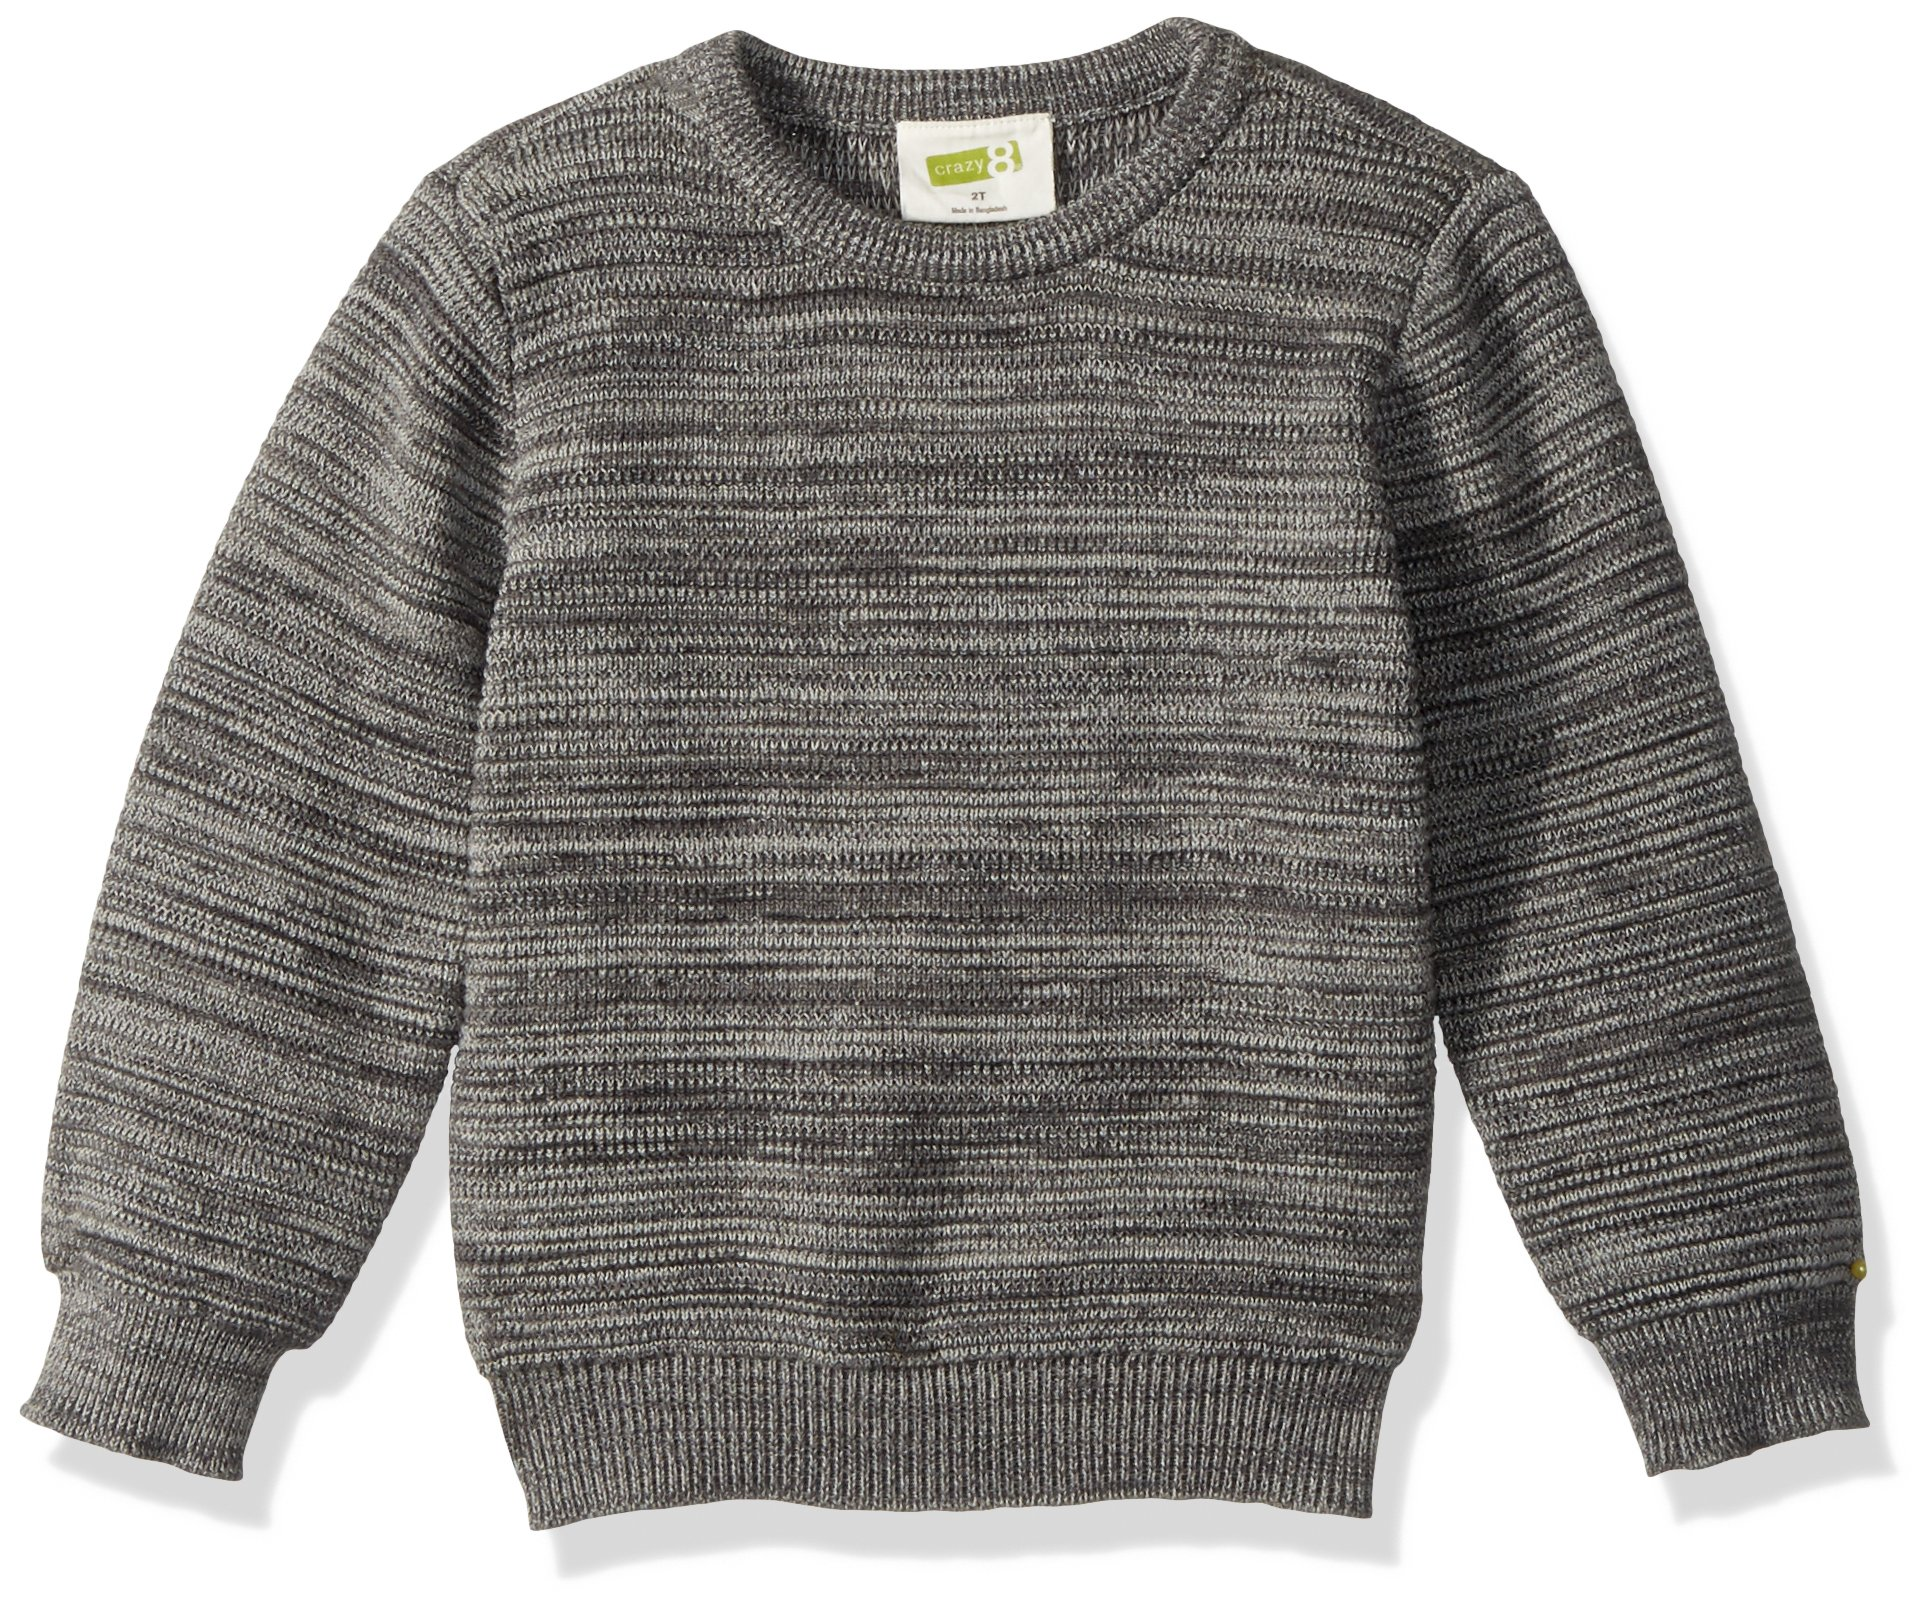 Crazy 8 Toddler Boys' Long Sleeve Sweater, Heather Grey, 4T